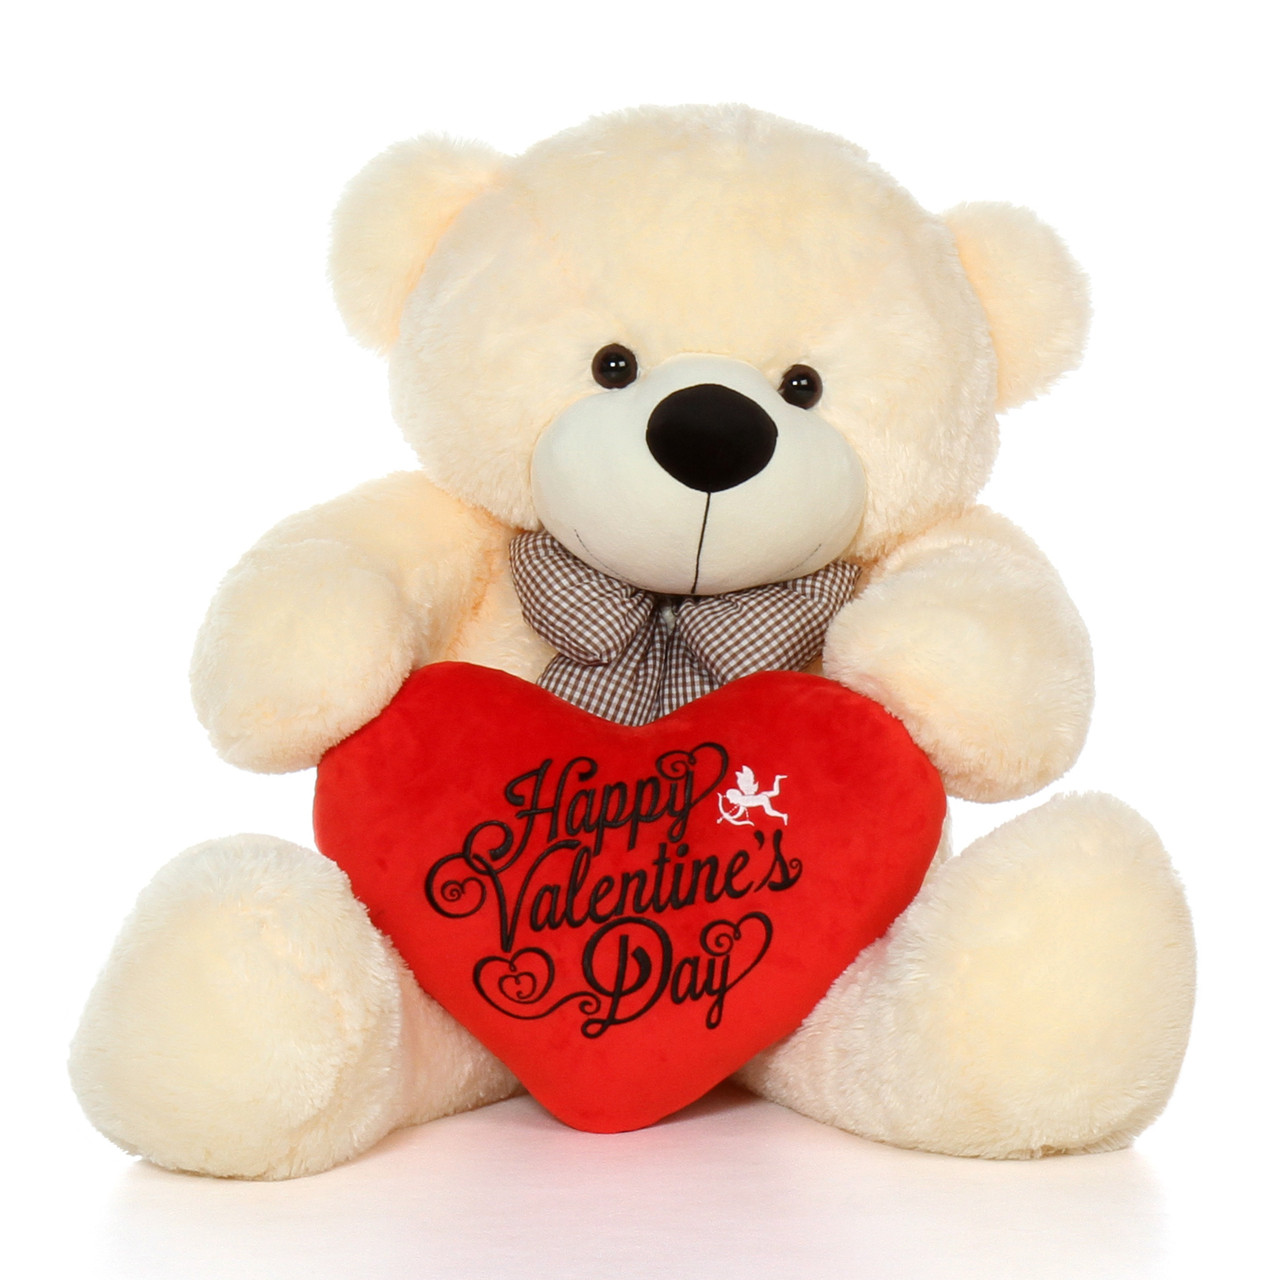 48in Life Size Happy Valentine's Day Teddy Bear Vanilla